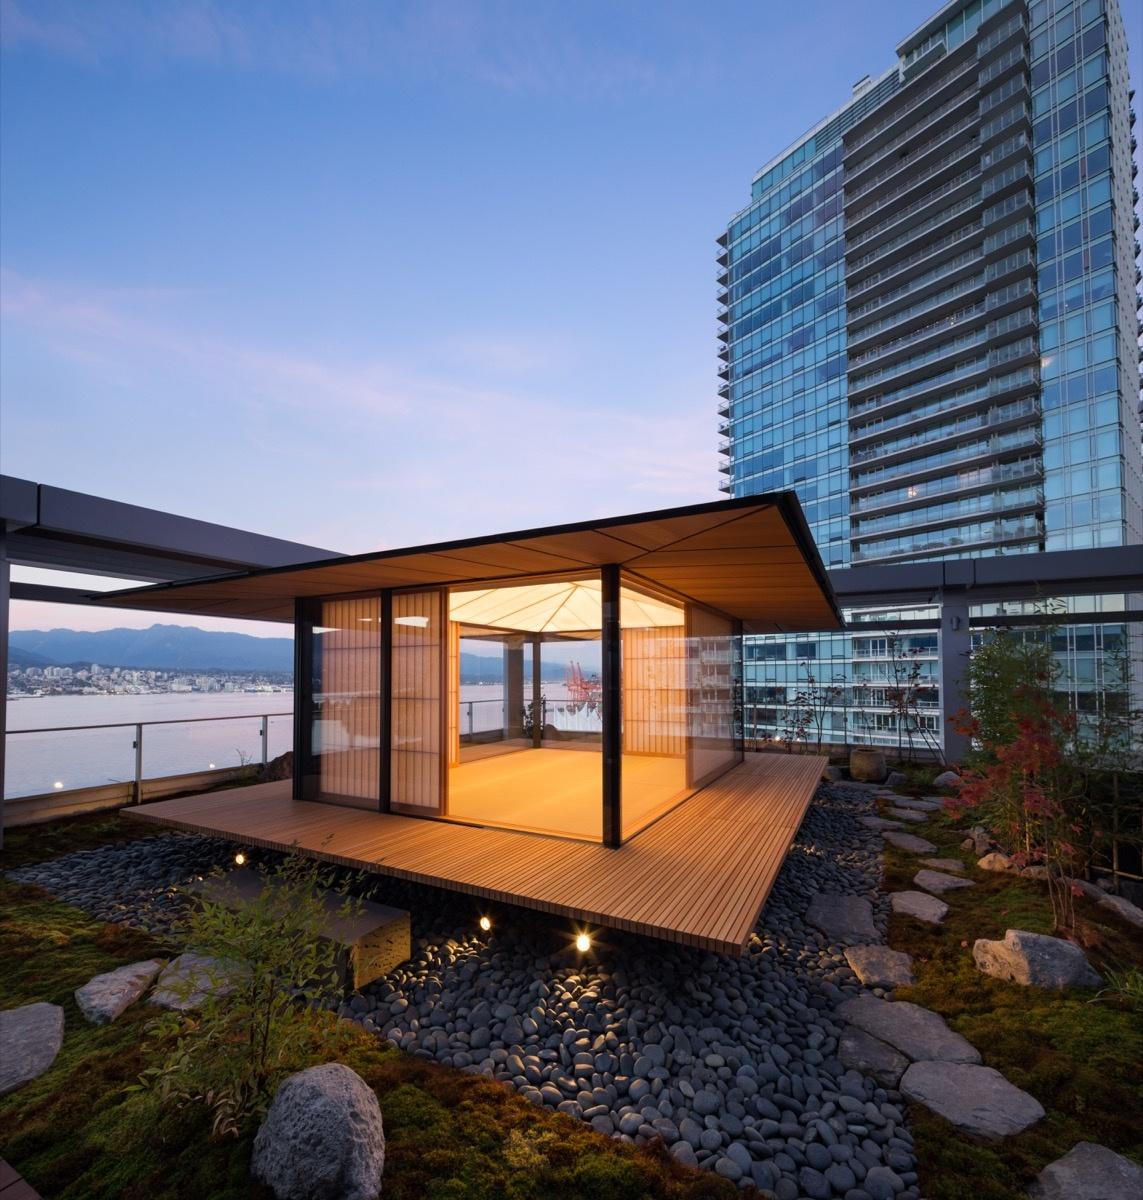 6 Modern Teahouses That Are Architectural Wonders - Artsy on grain silo home designs, shed home designs, tea house floor plans,